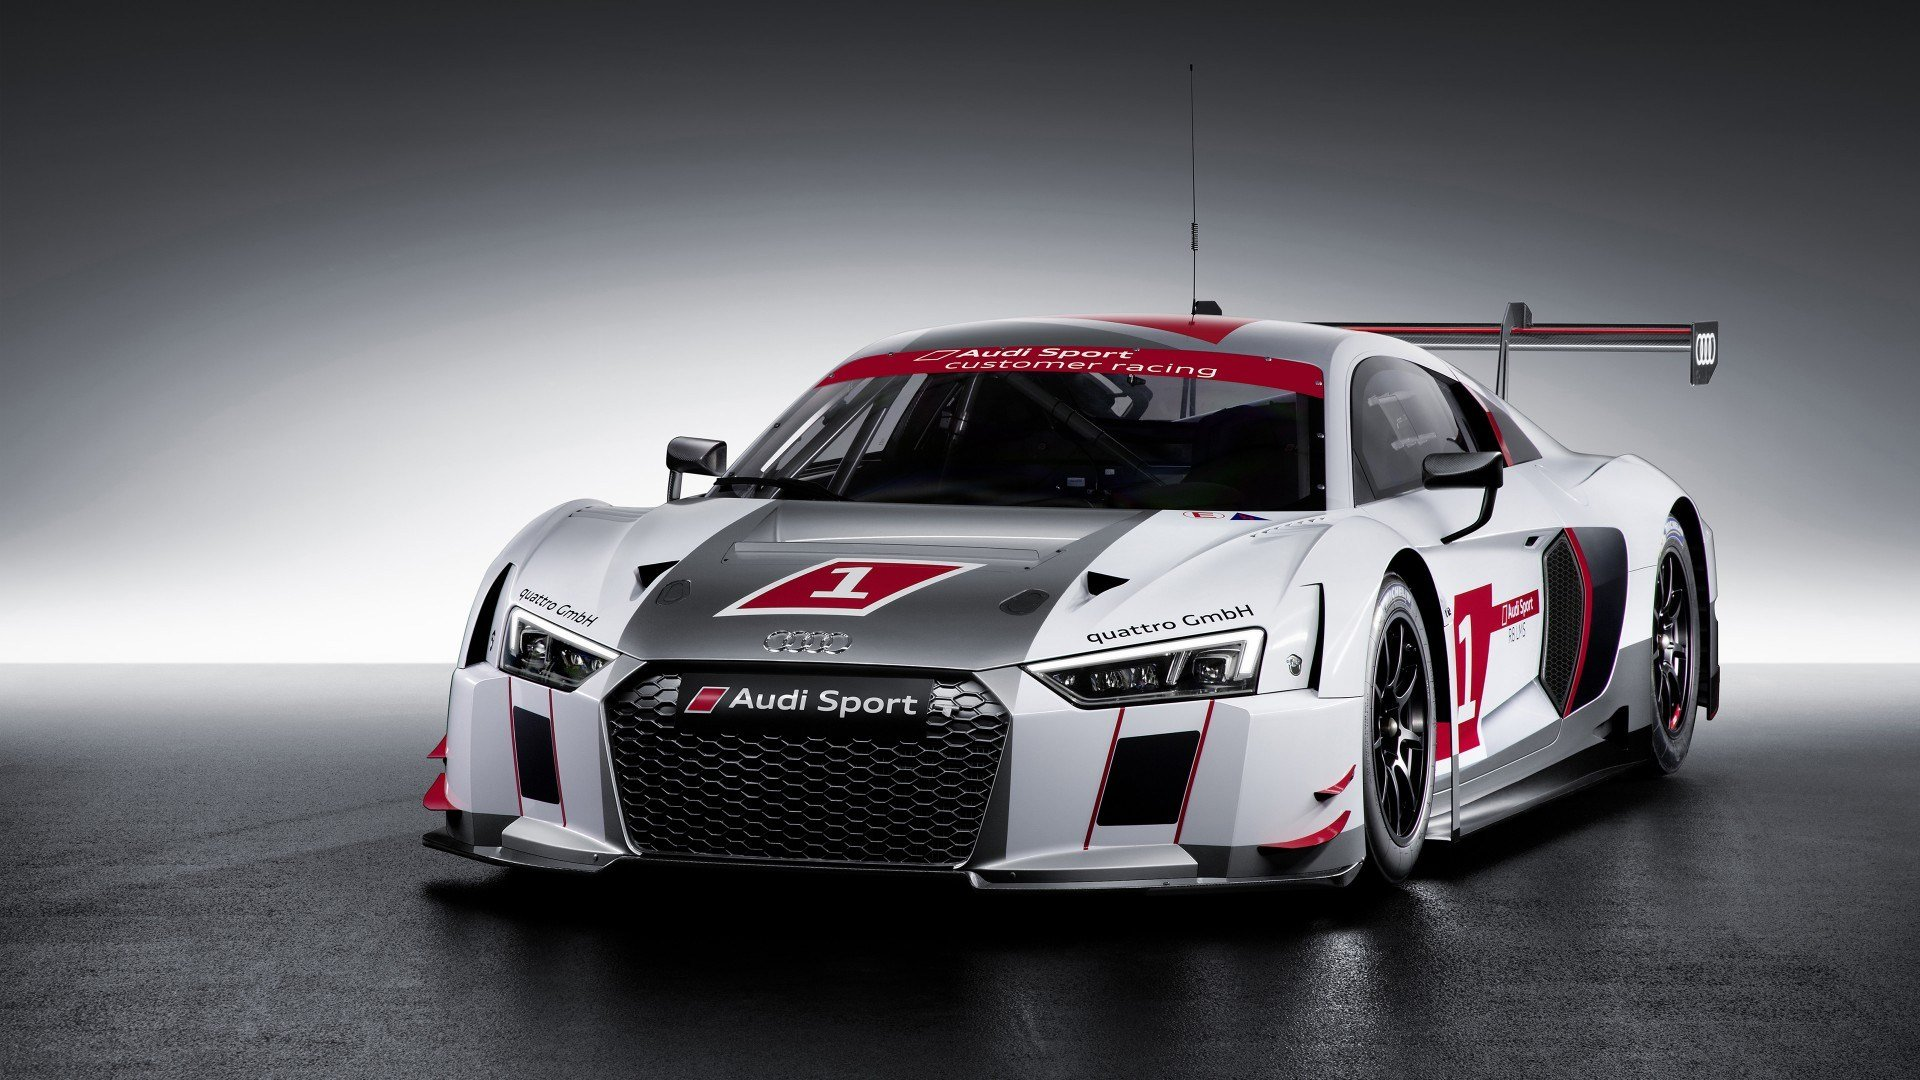 Latest 2015 Audi R8 Lms Wallpapers Hd Wallpapers Id 15030 Free Download